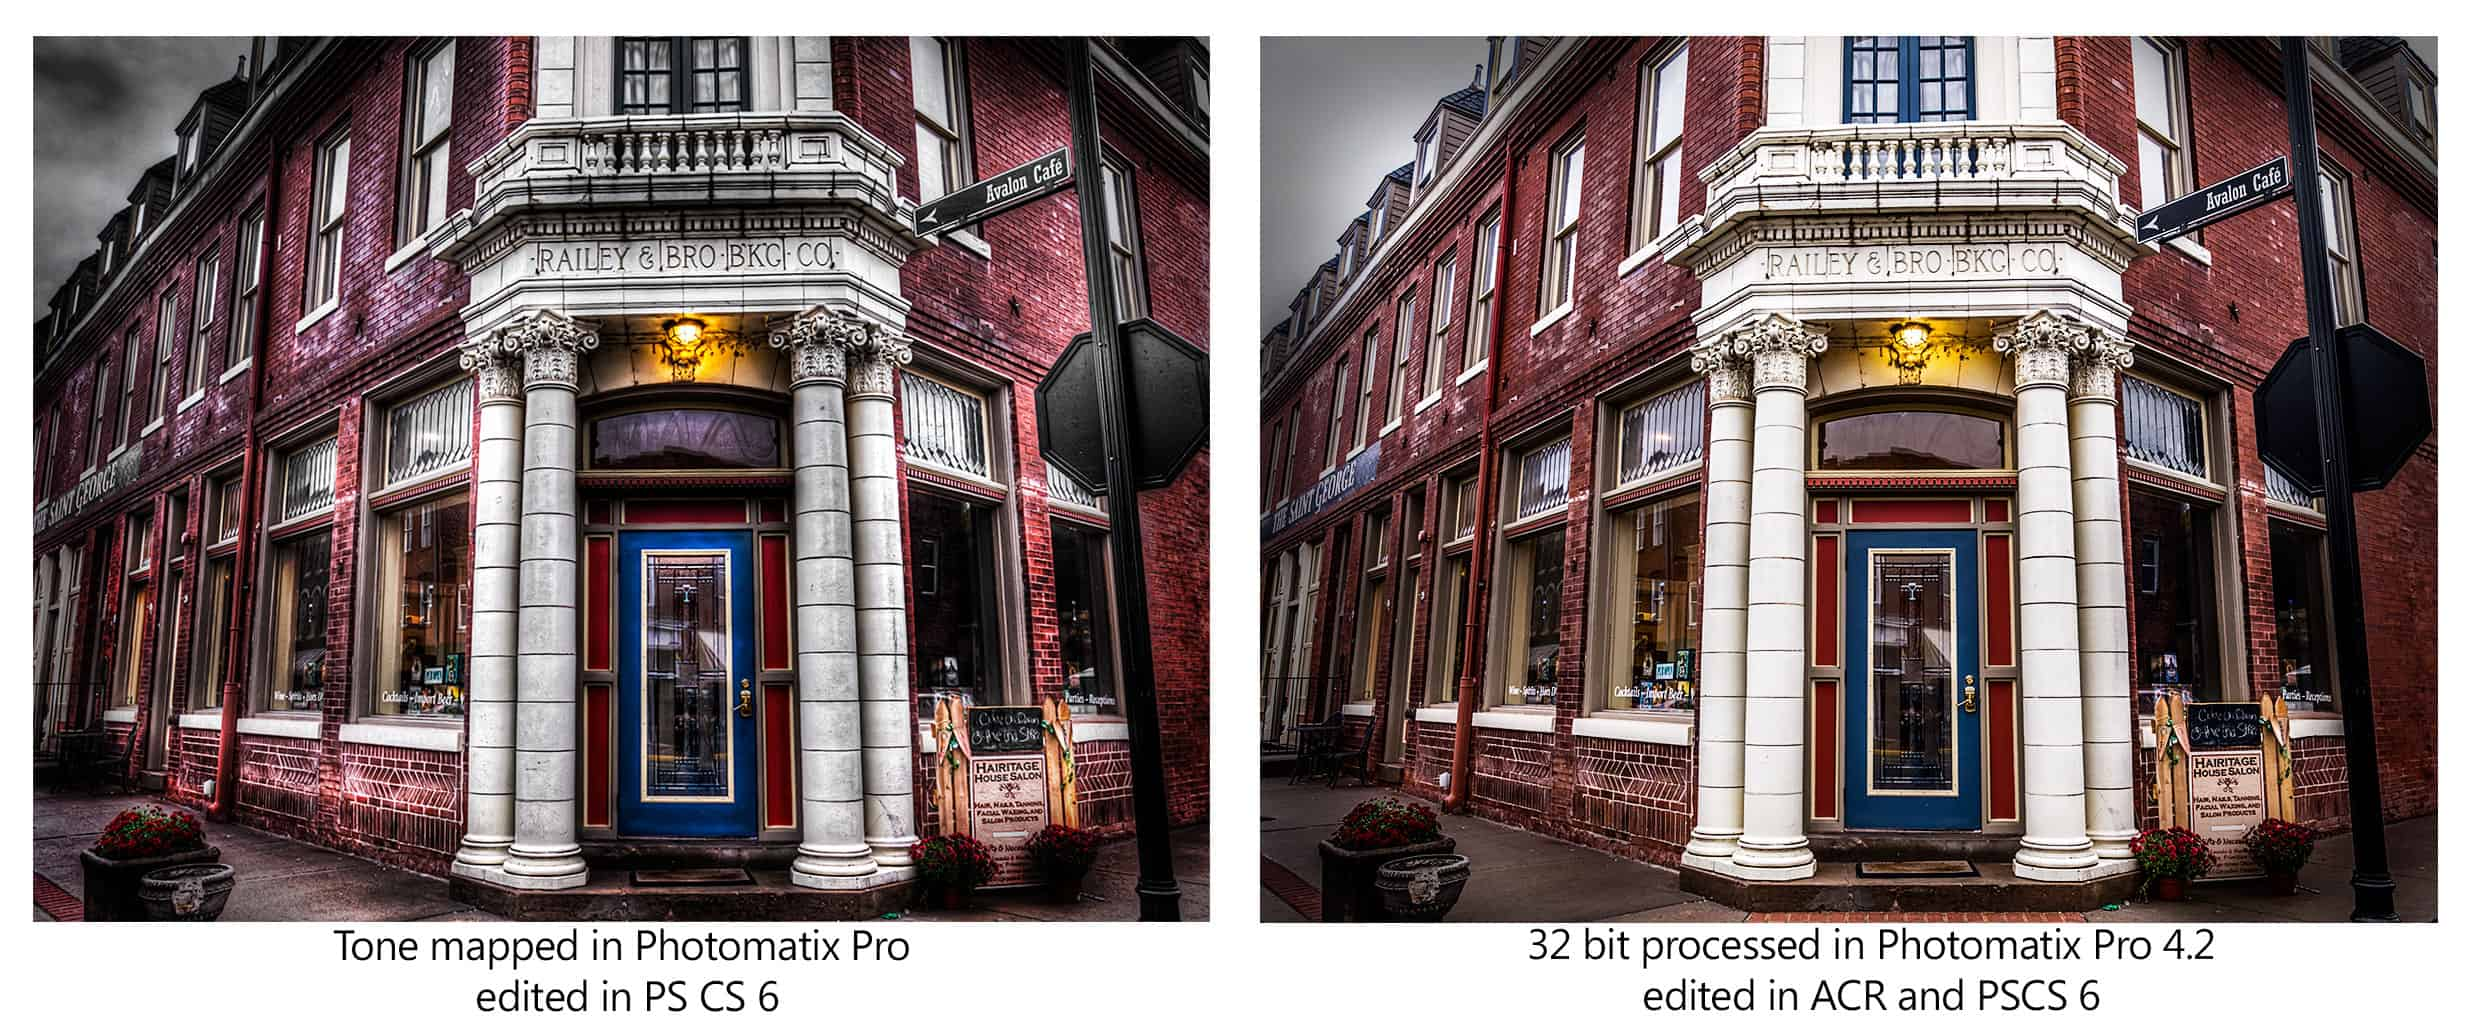 32 Bit HDR Processing Workflow with Photomatix Pro